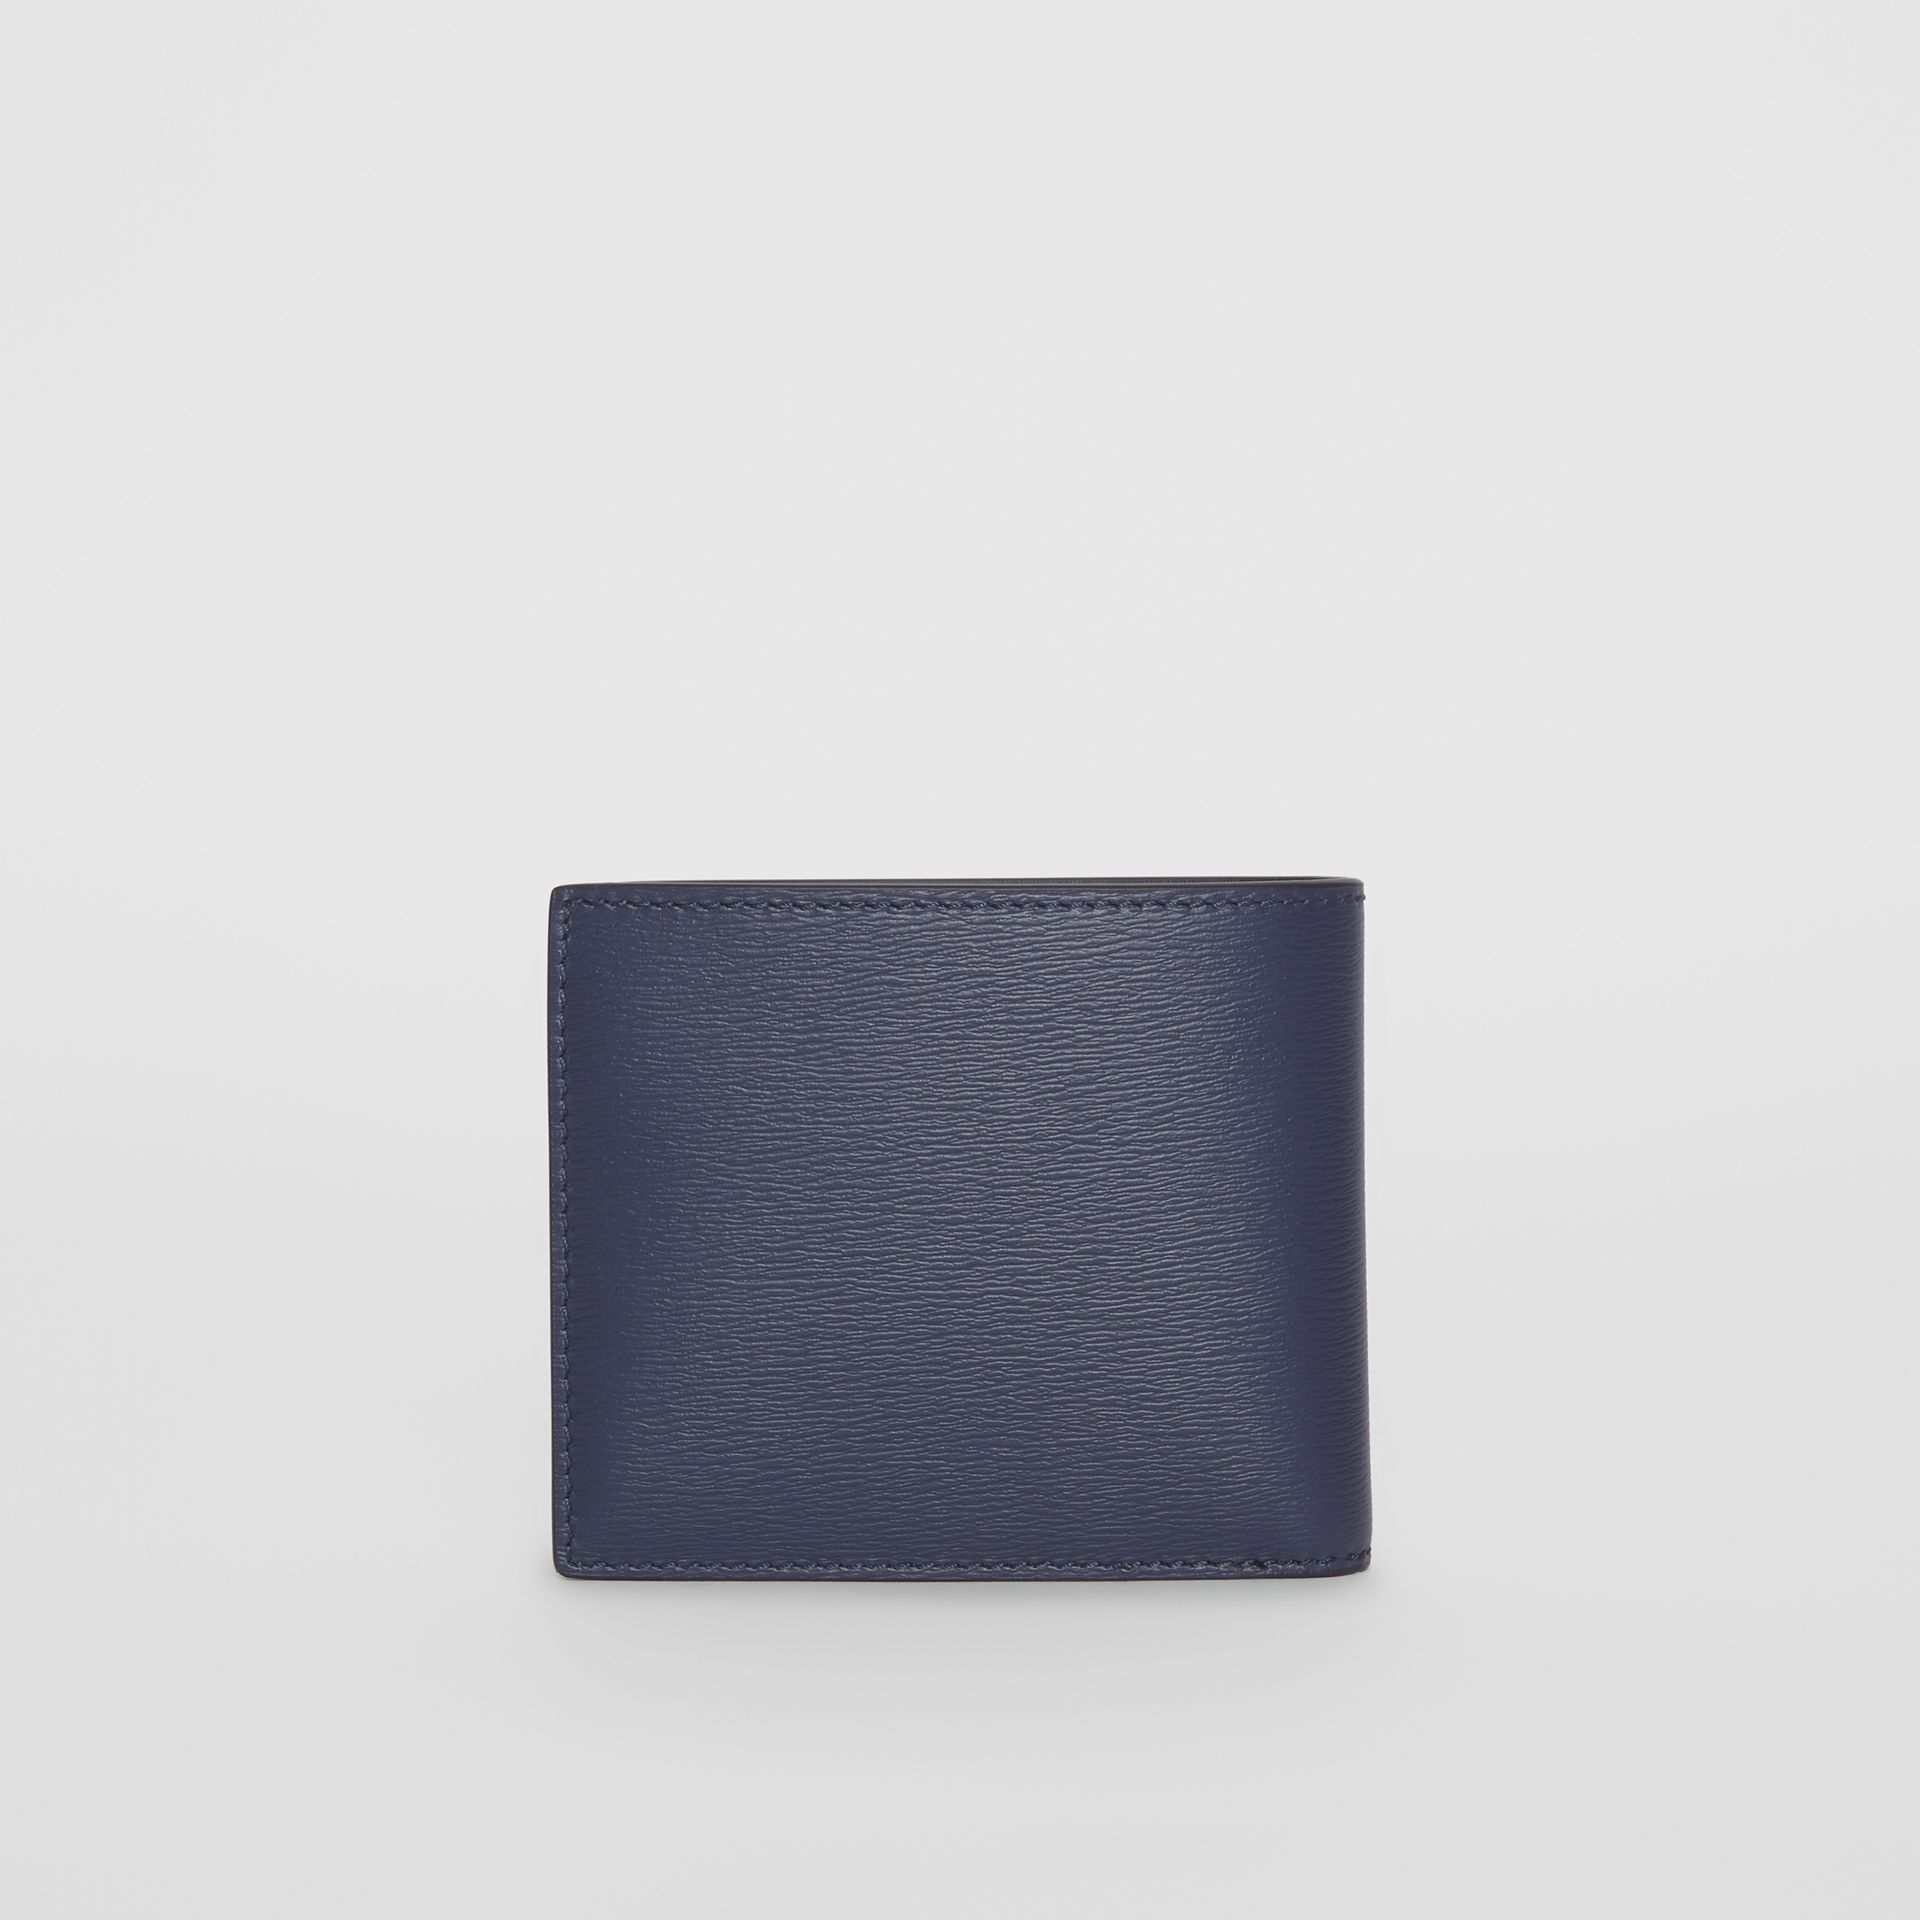 London Leather Bifold Wallet with ID Card Case in Navy - Men | Burberry United Kingdom - gallery image 4